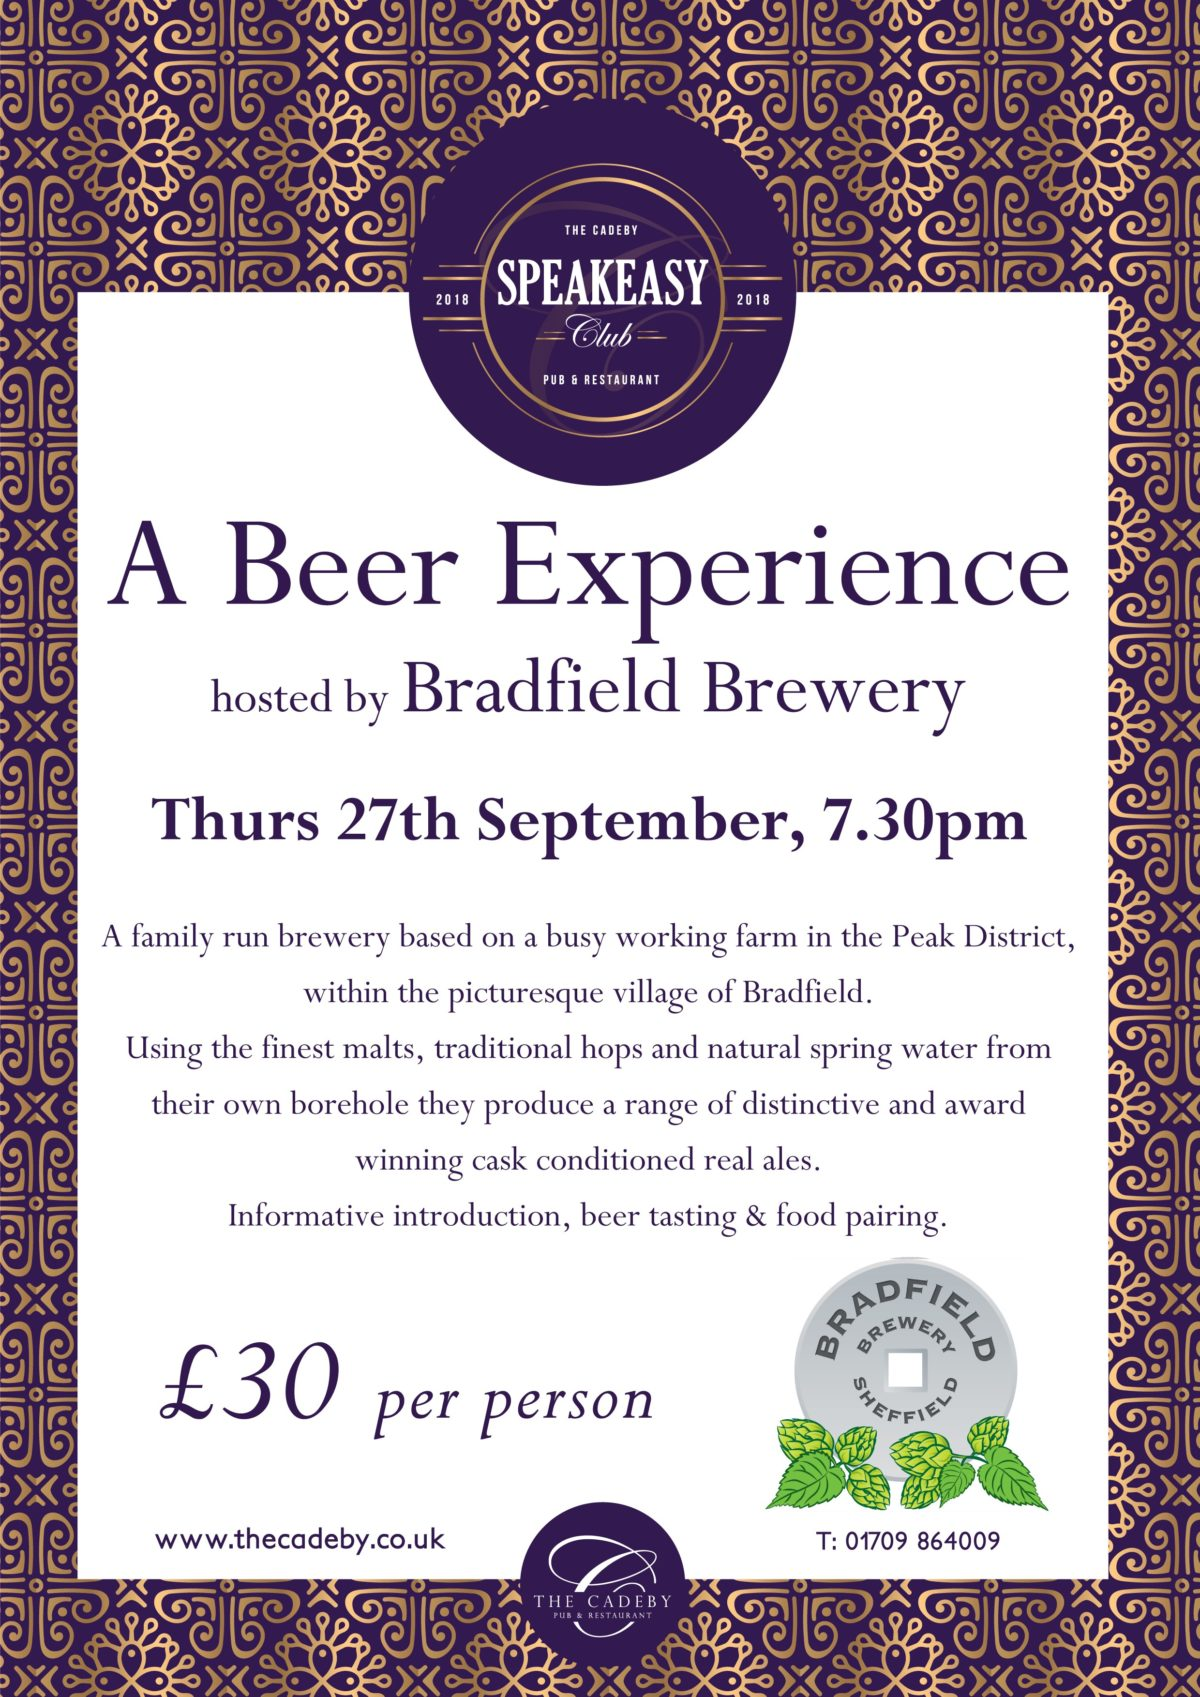 A Beer Experience at The Cadeby with Bradfield Brewery a73f6e9398